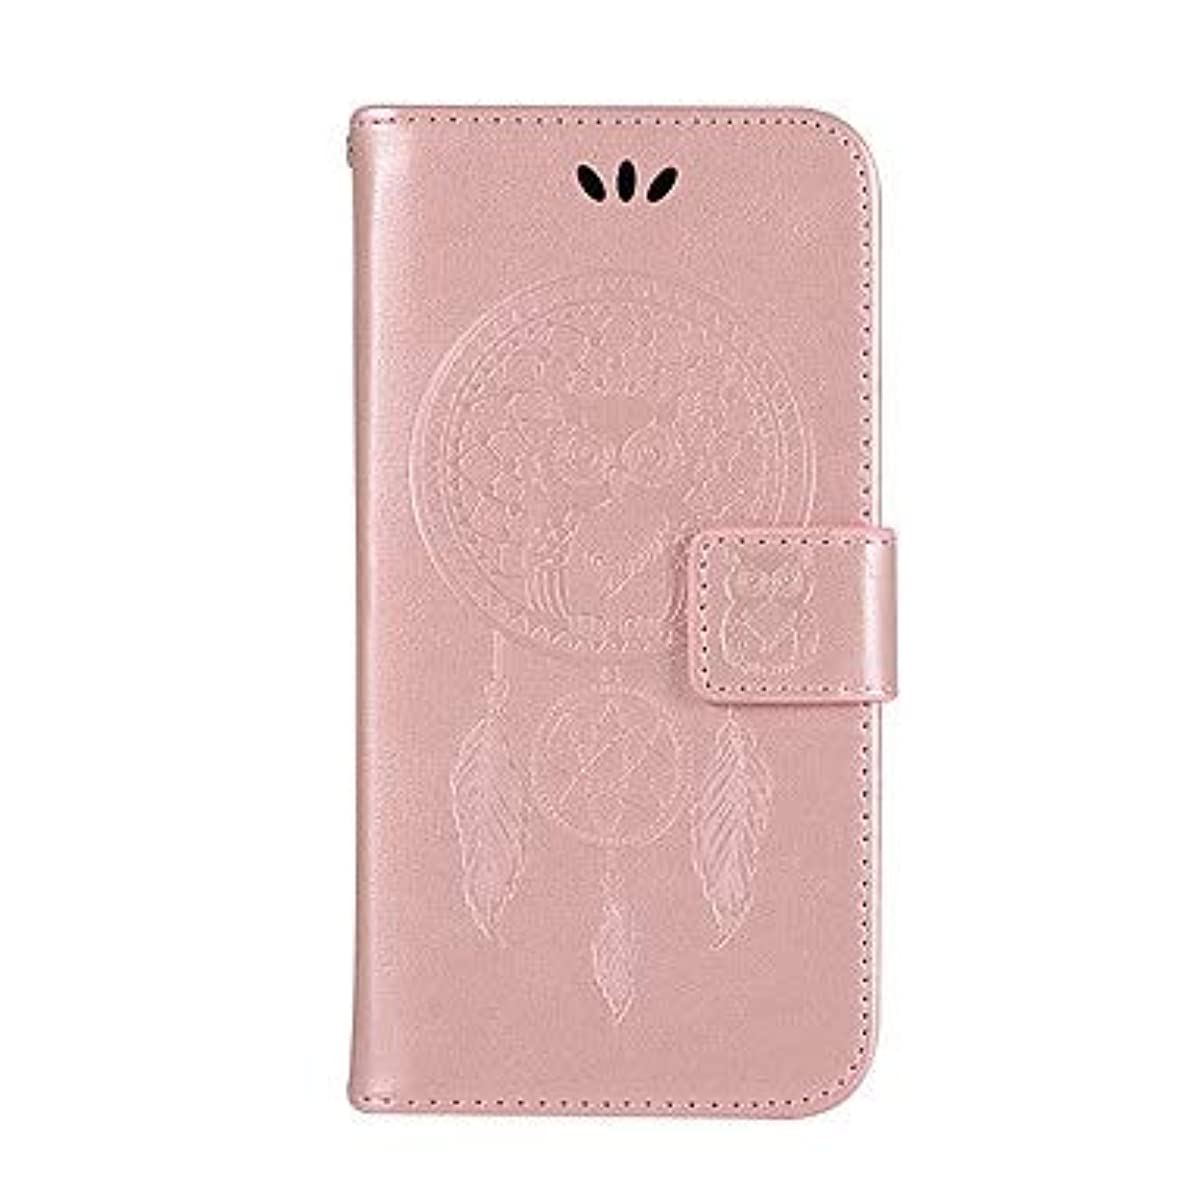 Case for Samsung Galaxy Wallet/Card Holder/with Stand Full Body Cases Owl Hard PU Leather (Color : Rose Gold, Compatible Models : Galaxy J4 Plus)